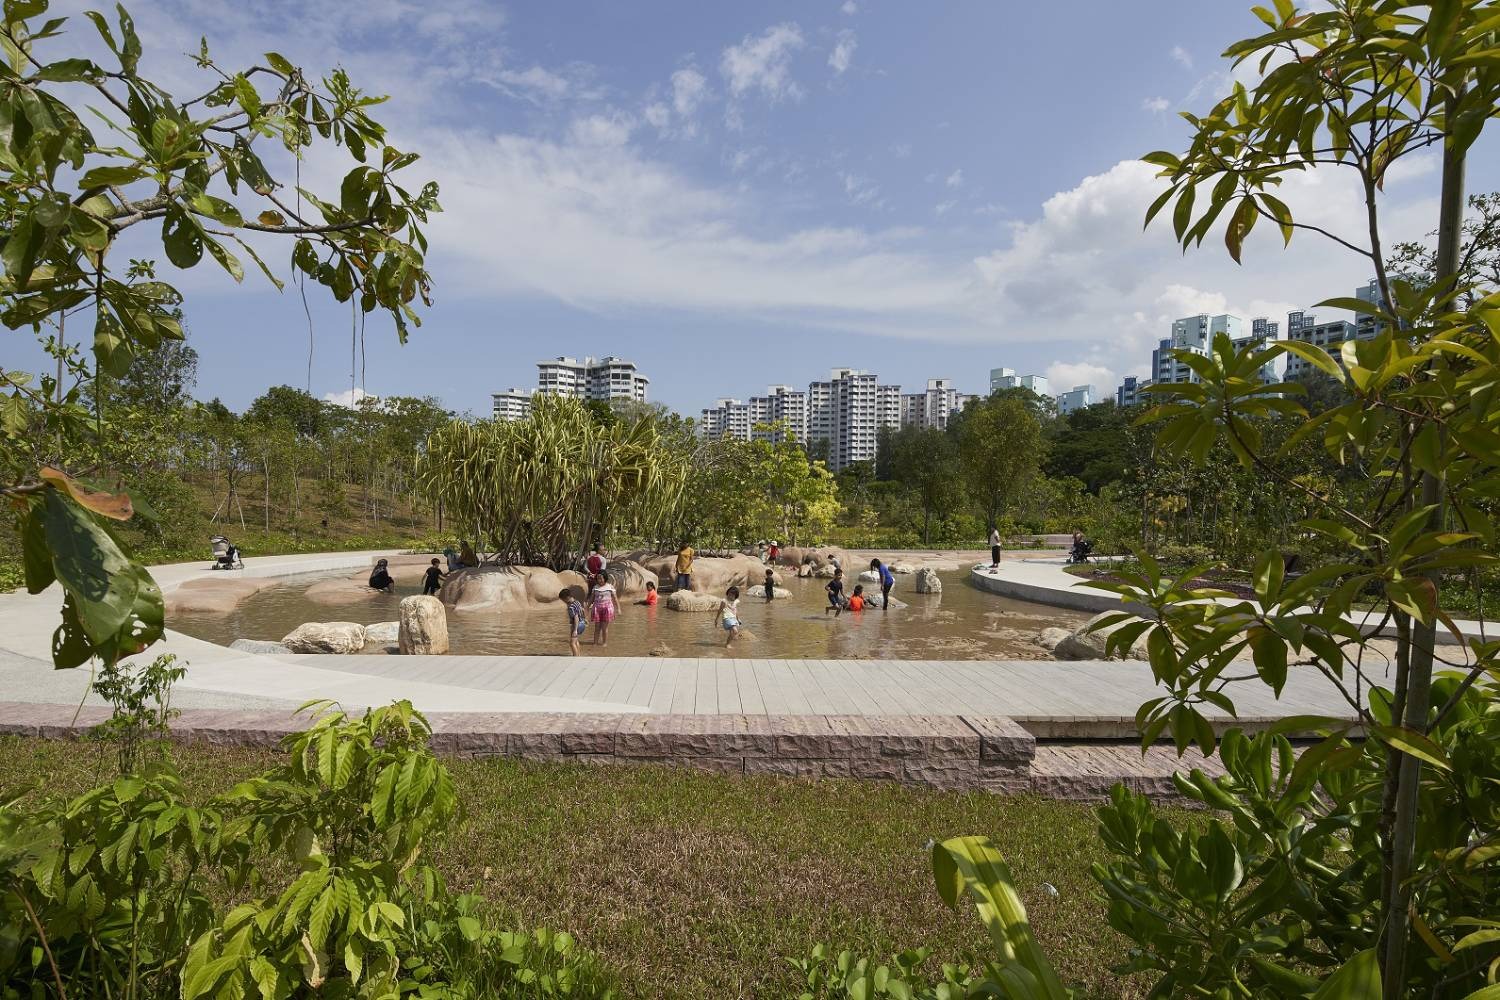 The first phase of Jurong Lake Gardens was designed by CPG (Photo: CPG Corp)